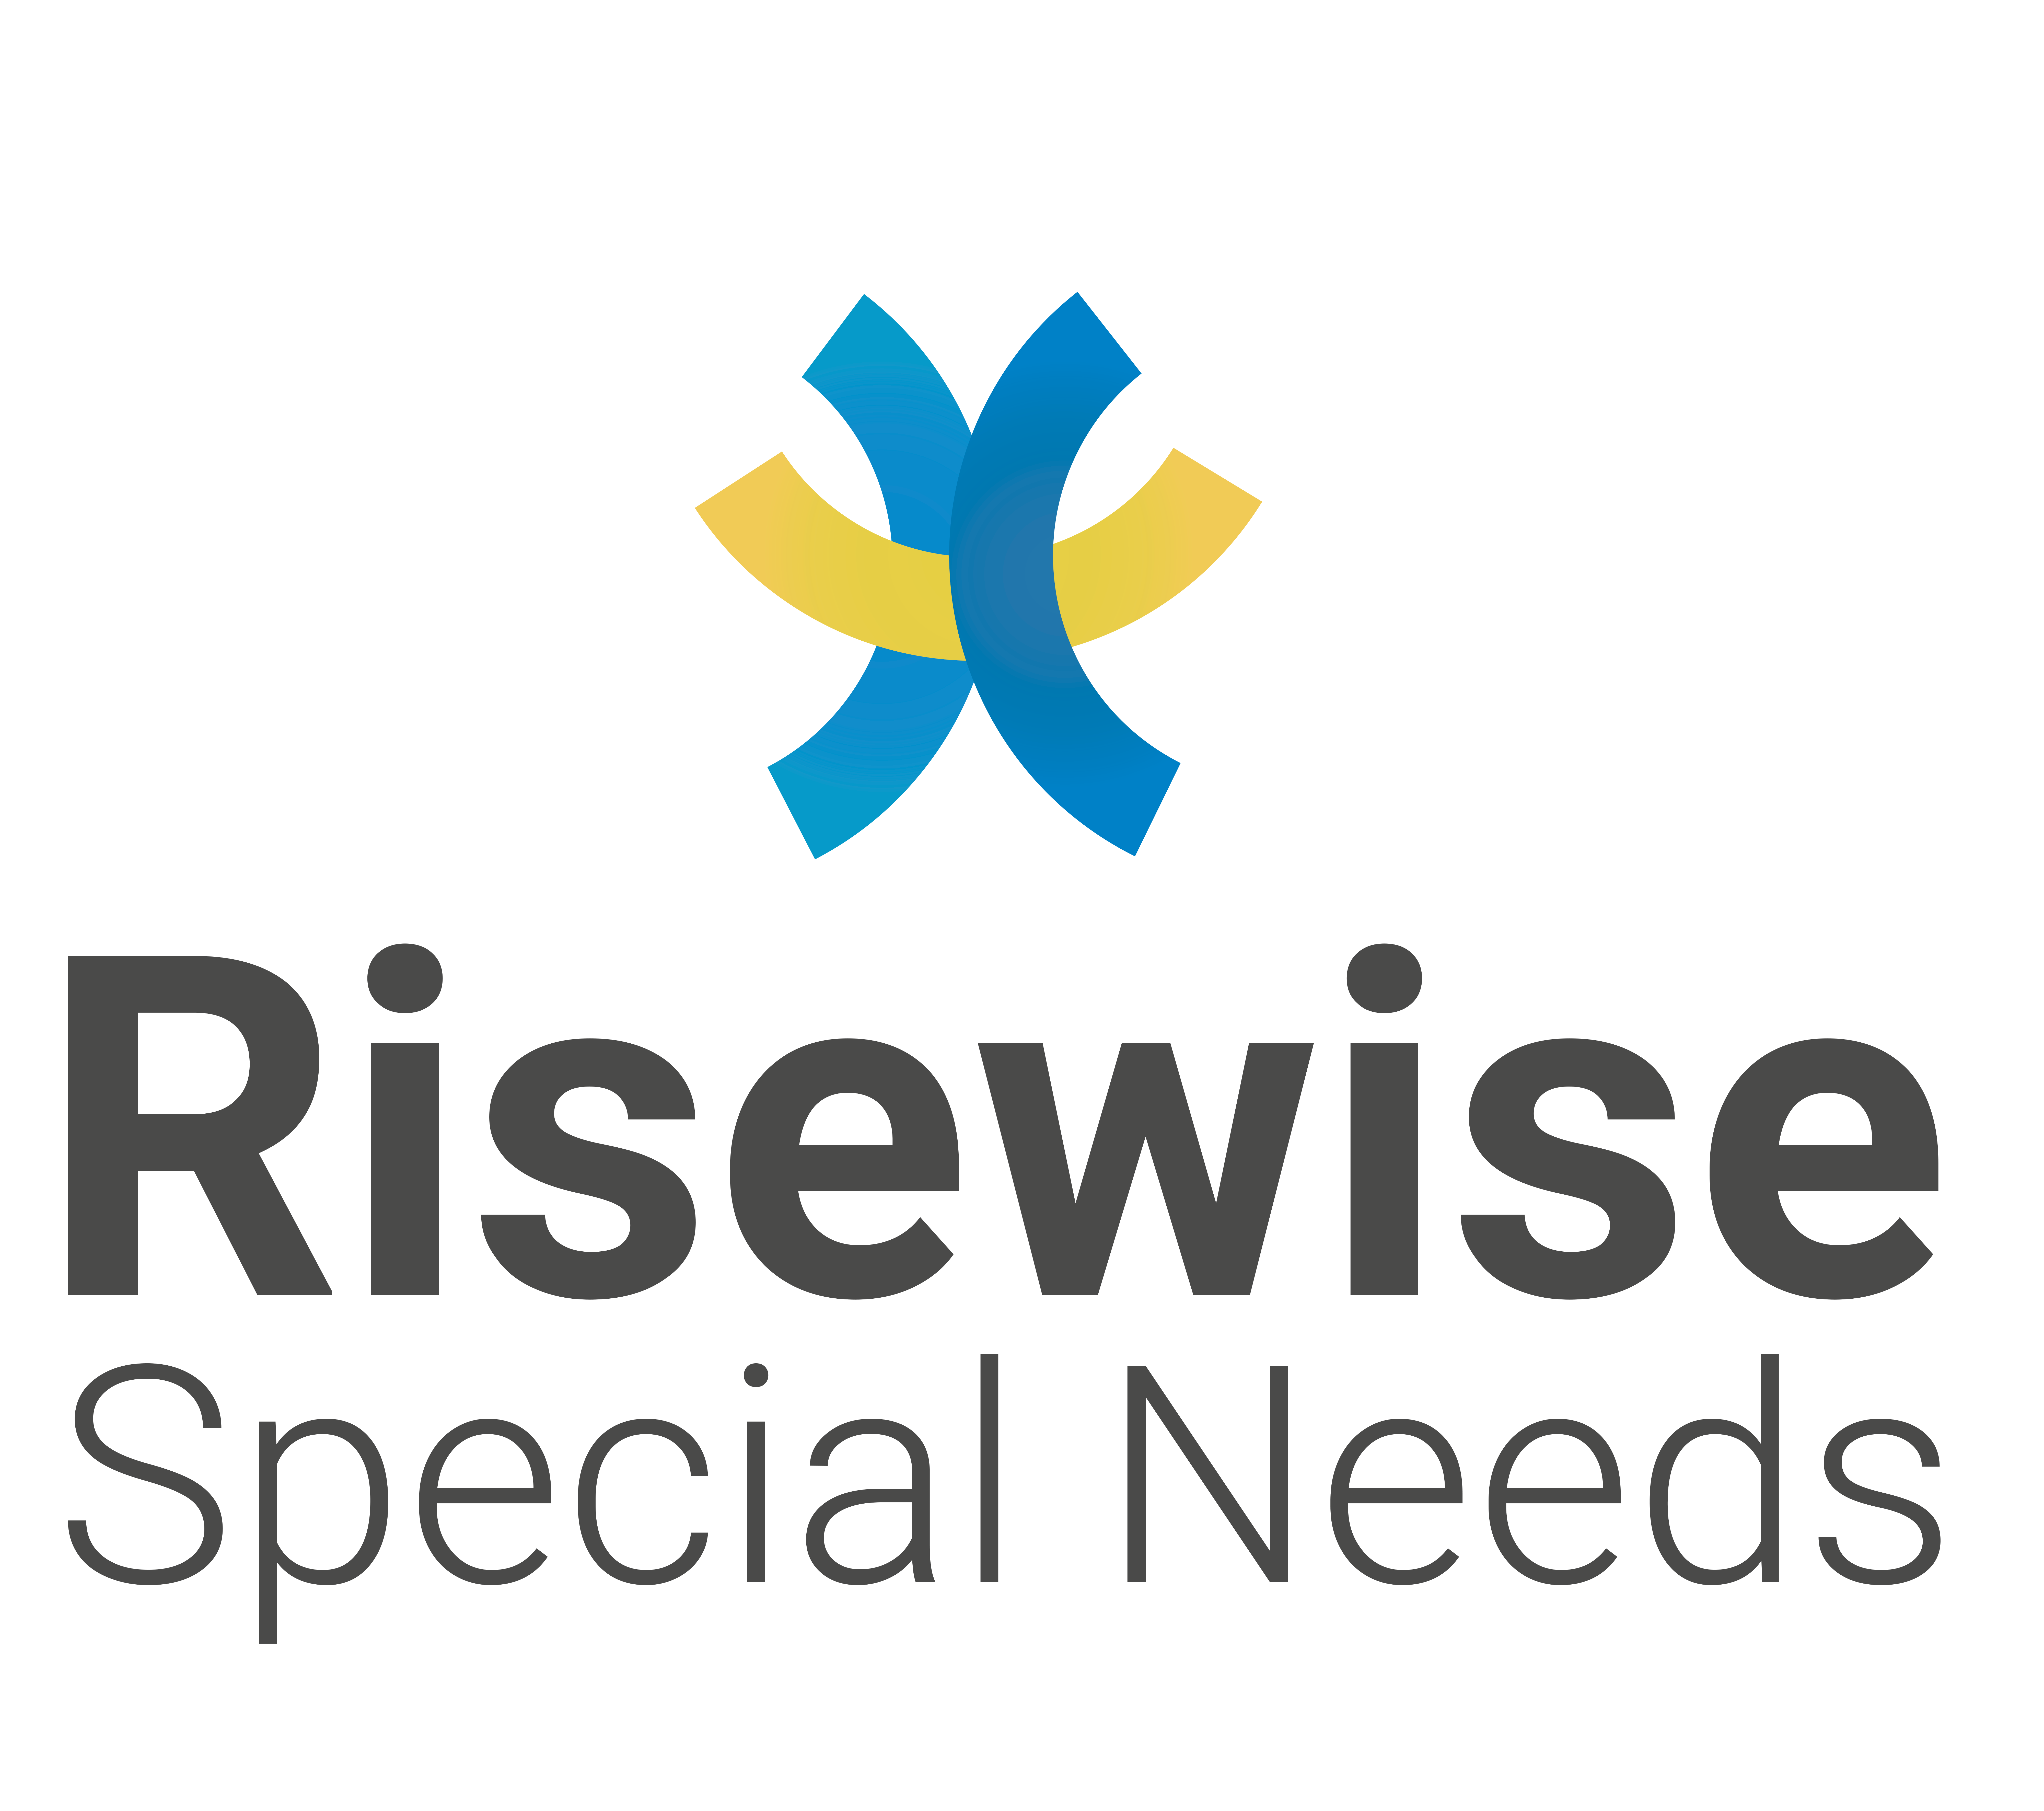 RISEWISE SPECIAL NEEDS